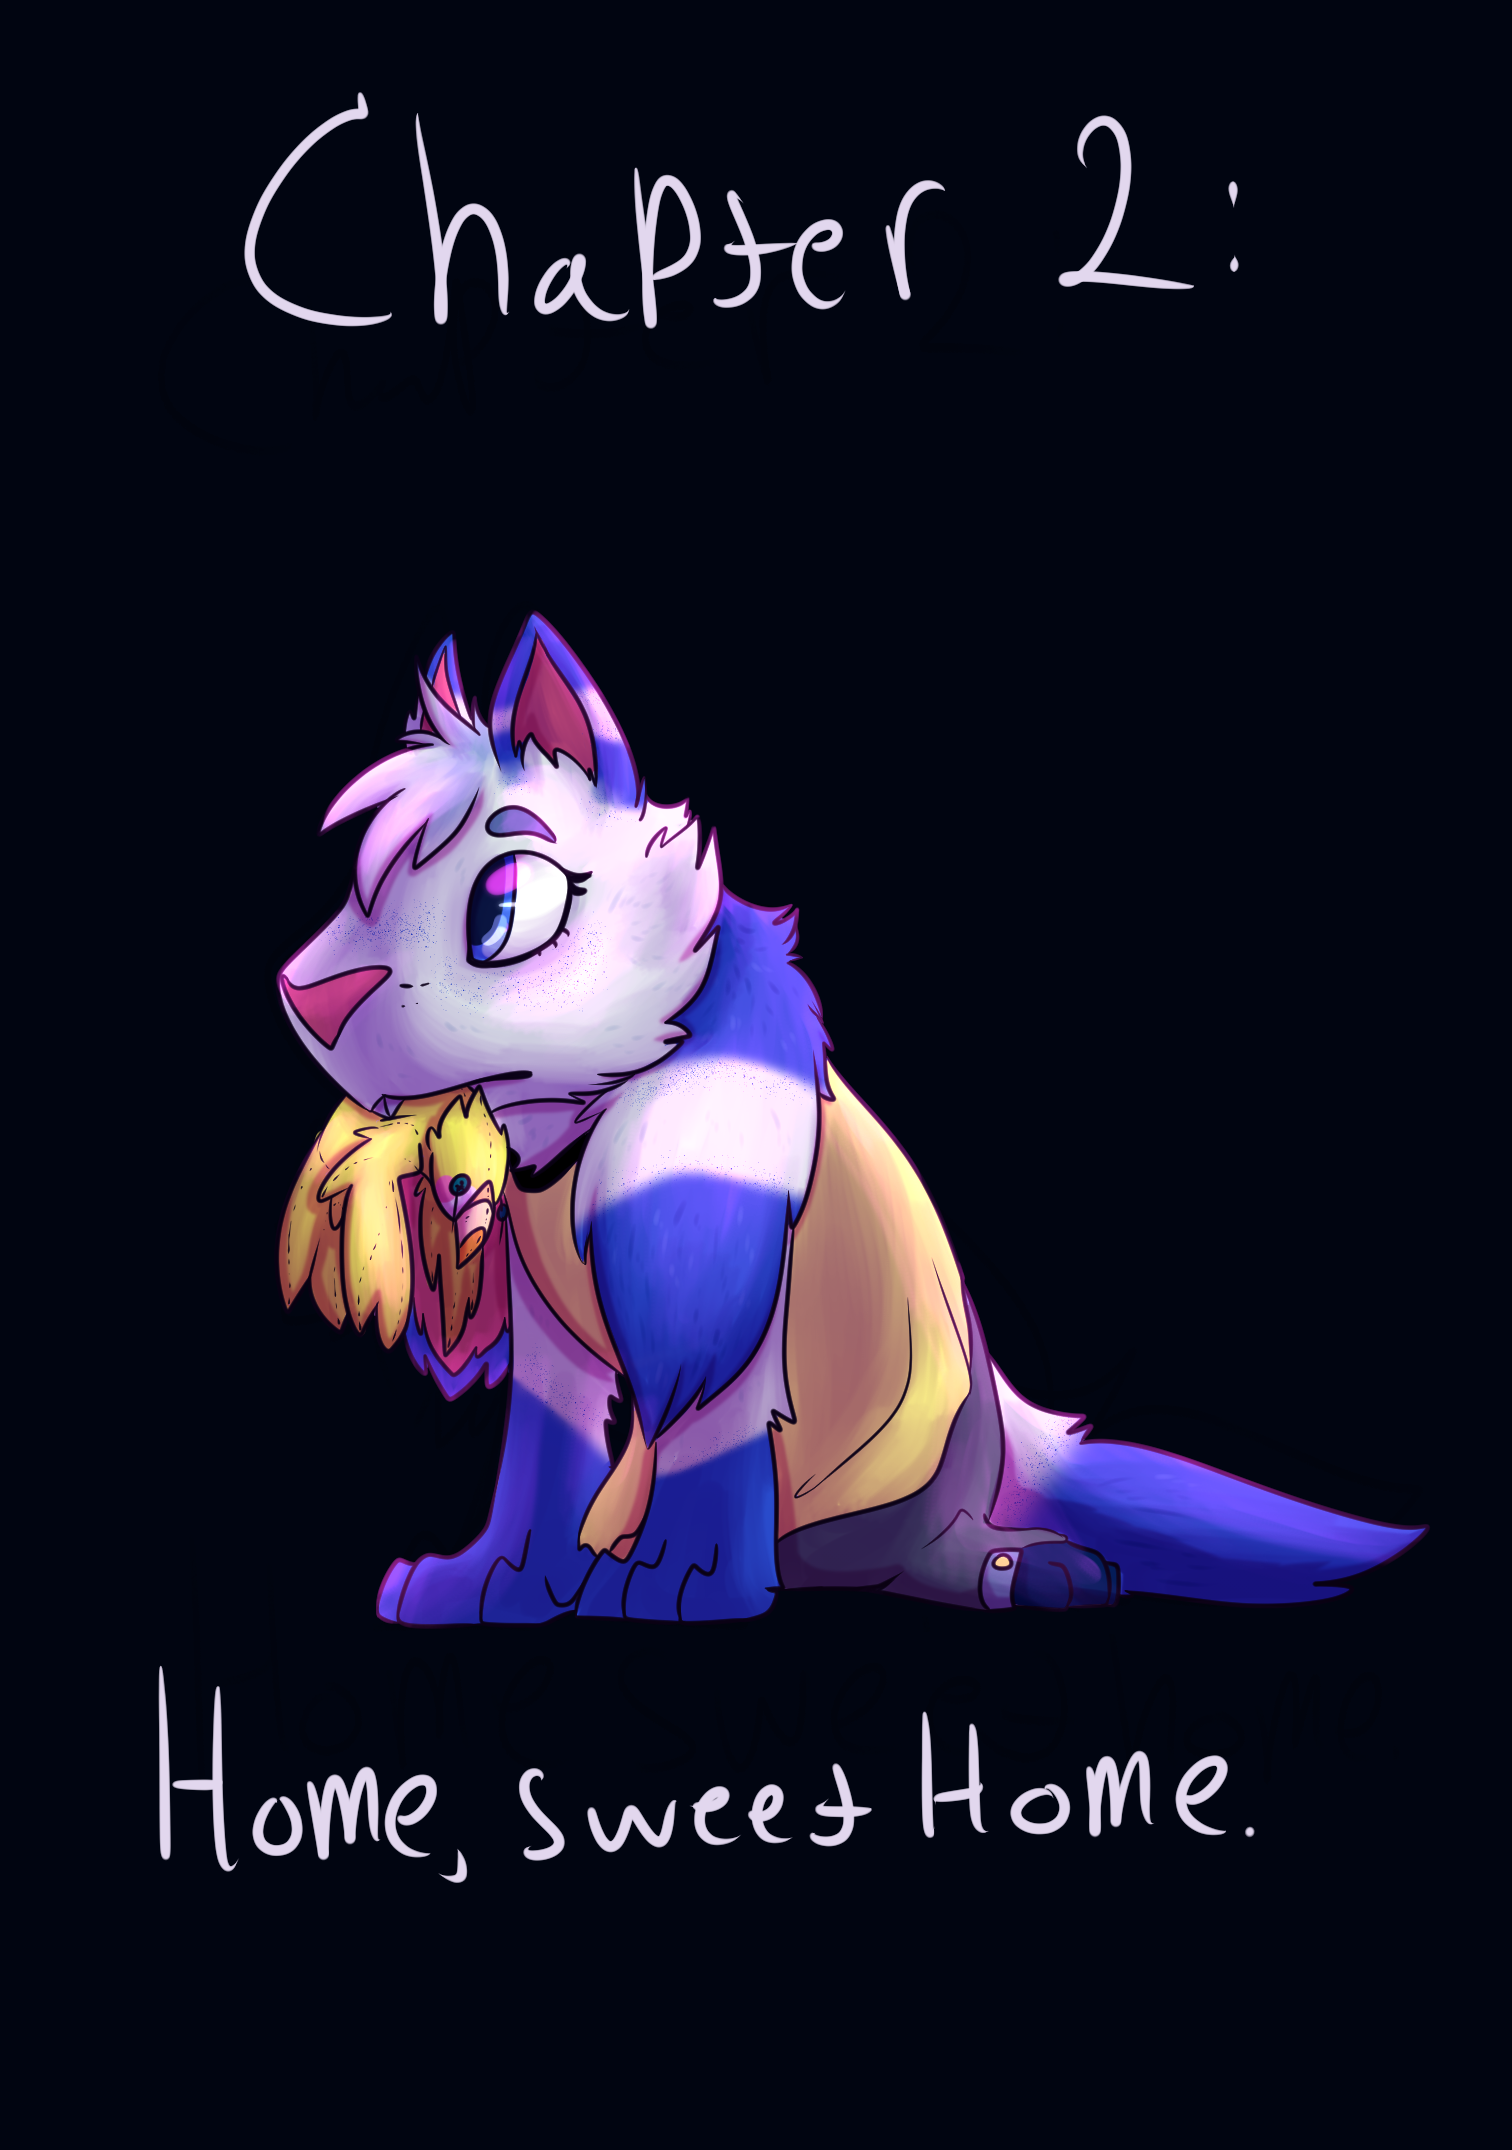 Chapter 2: Home, Sweet Home